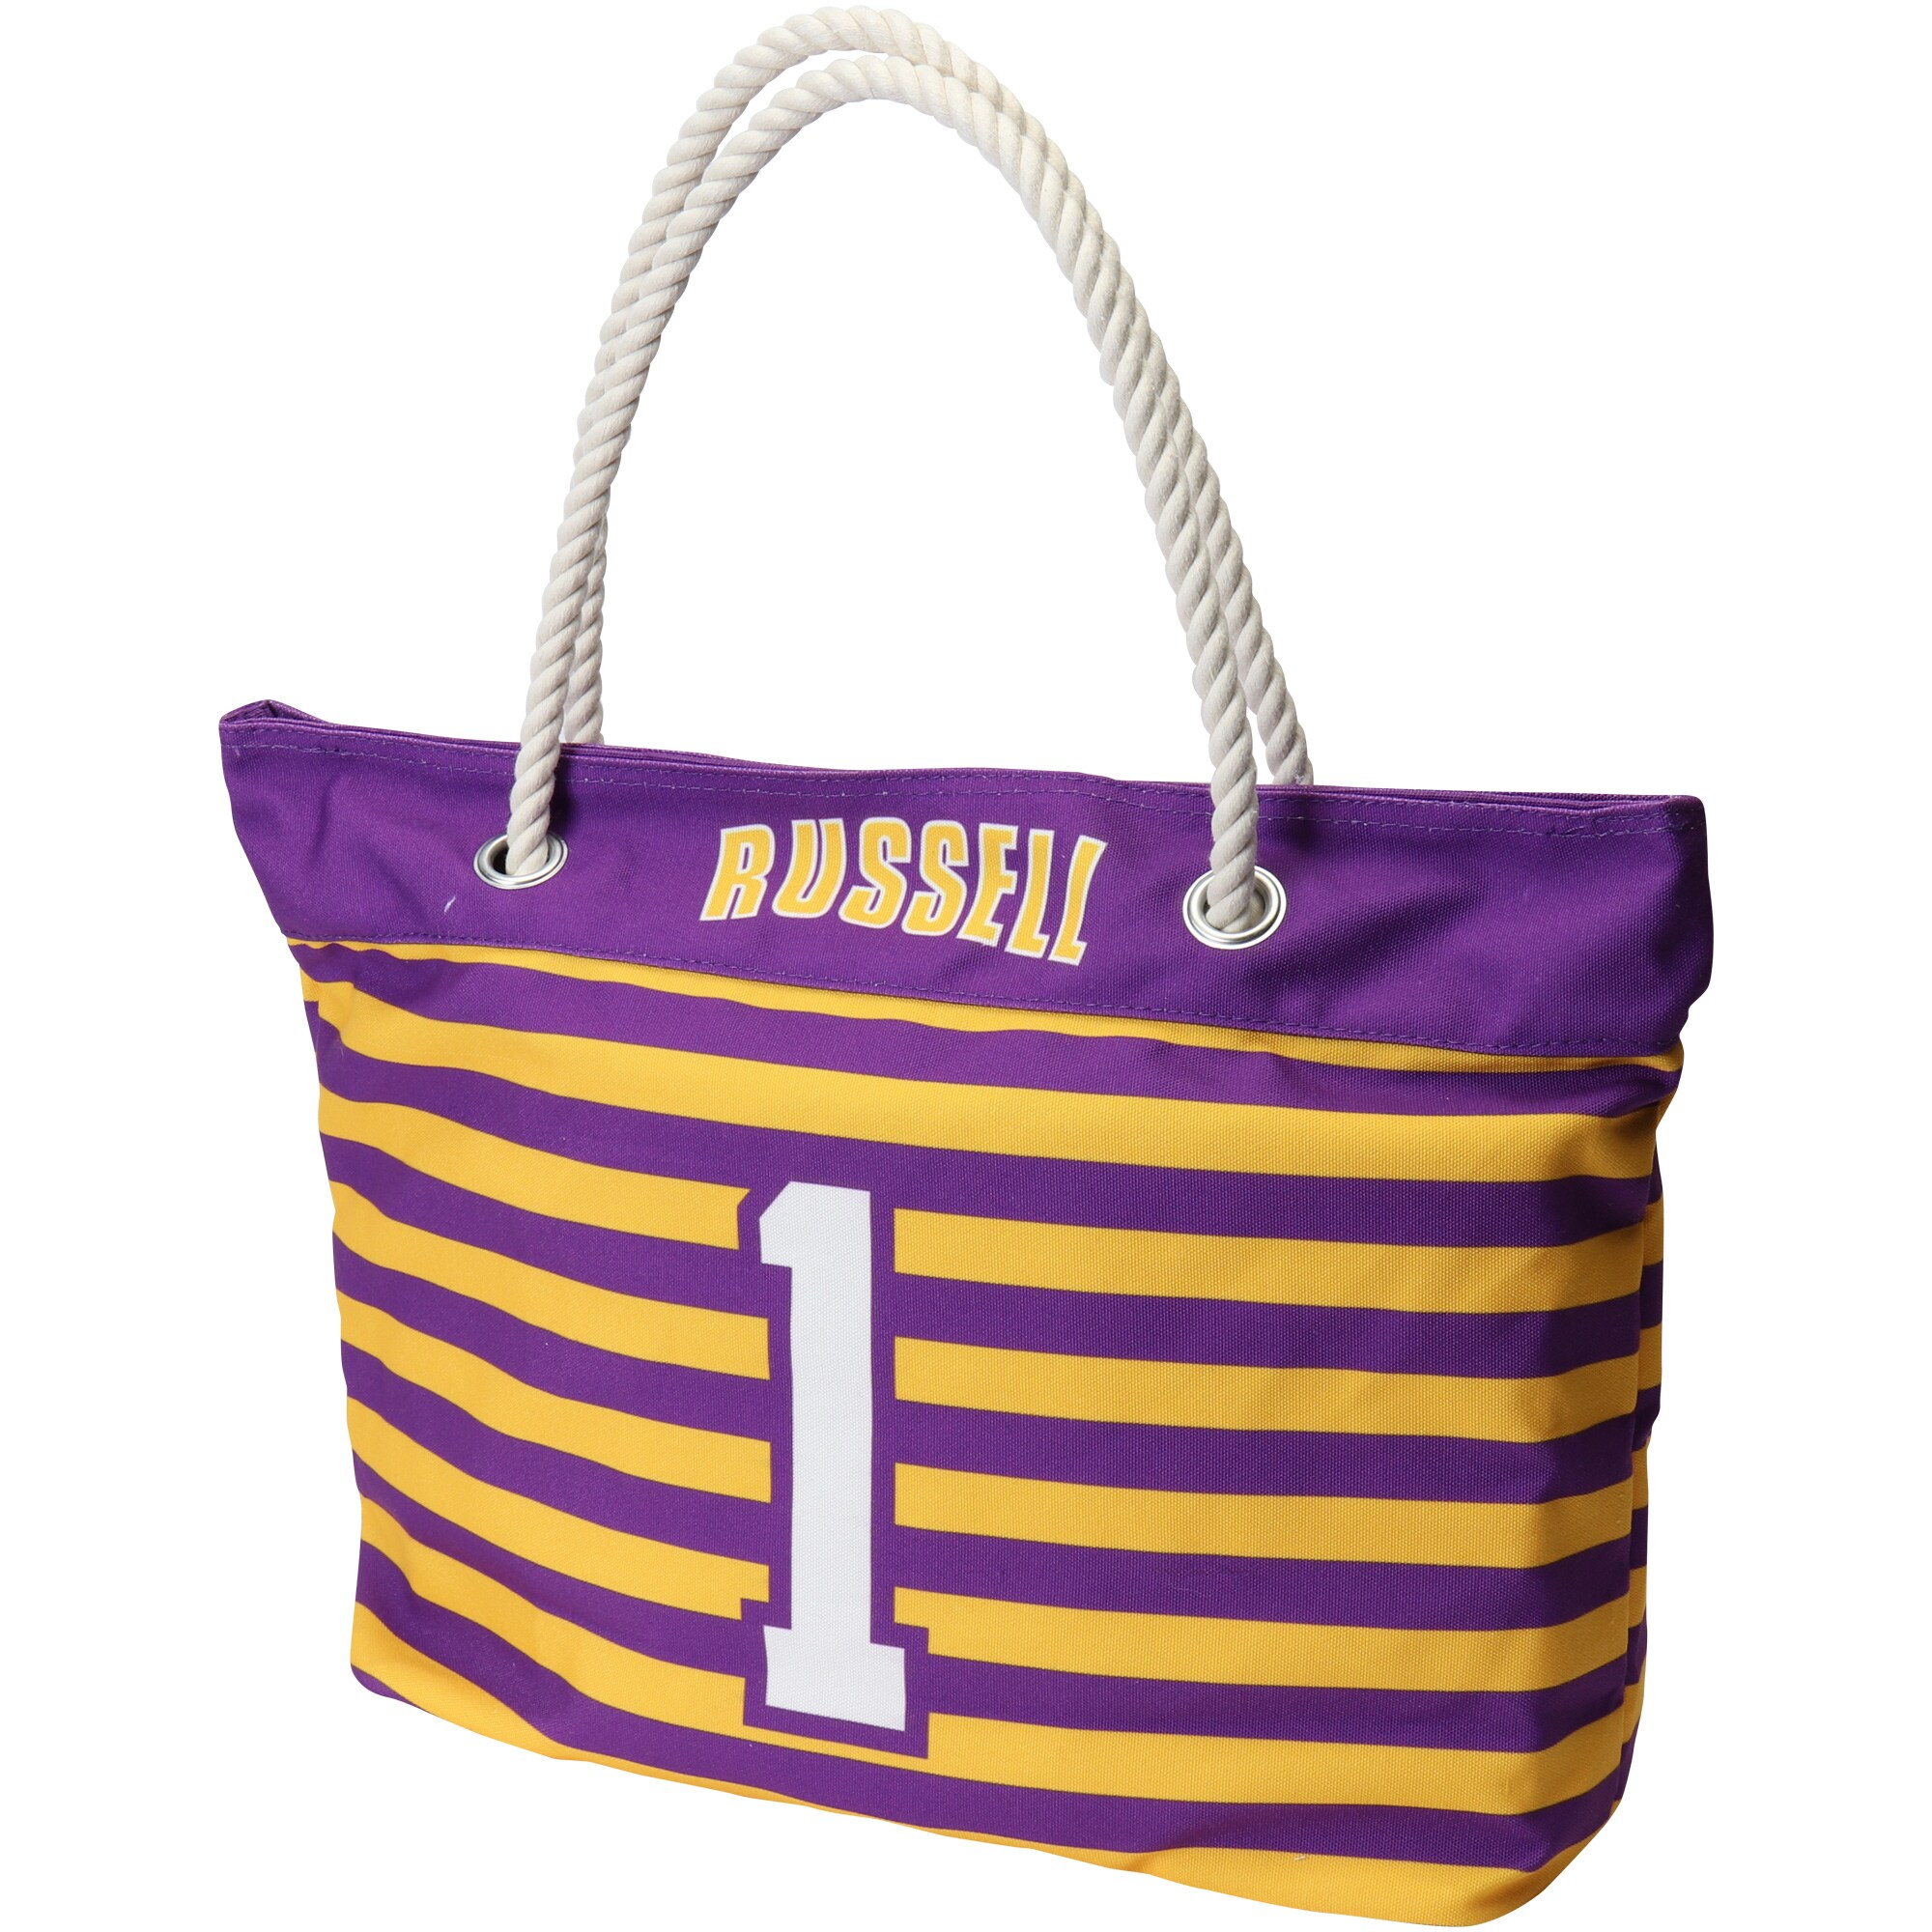 D'Angelo Russell Los Angeles Lakers Women's Player Nautical Stripe Tote Bag - Purple